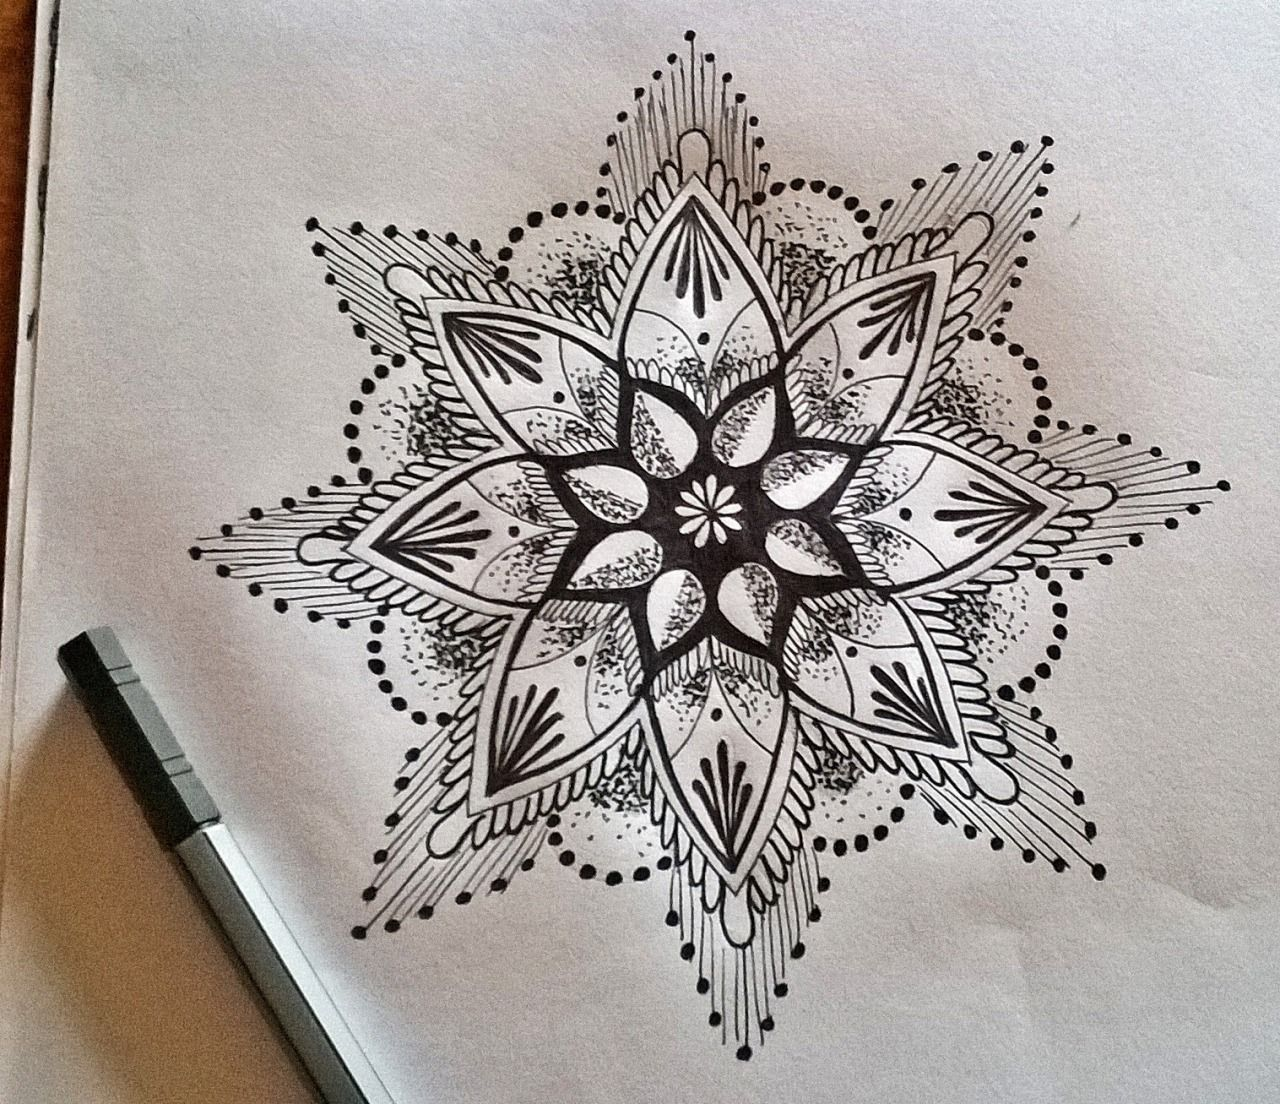 9 Mandala Tattoo Designs And Ideas: Http://mandala-designs.tumblr.com/post/88471363847